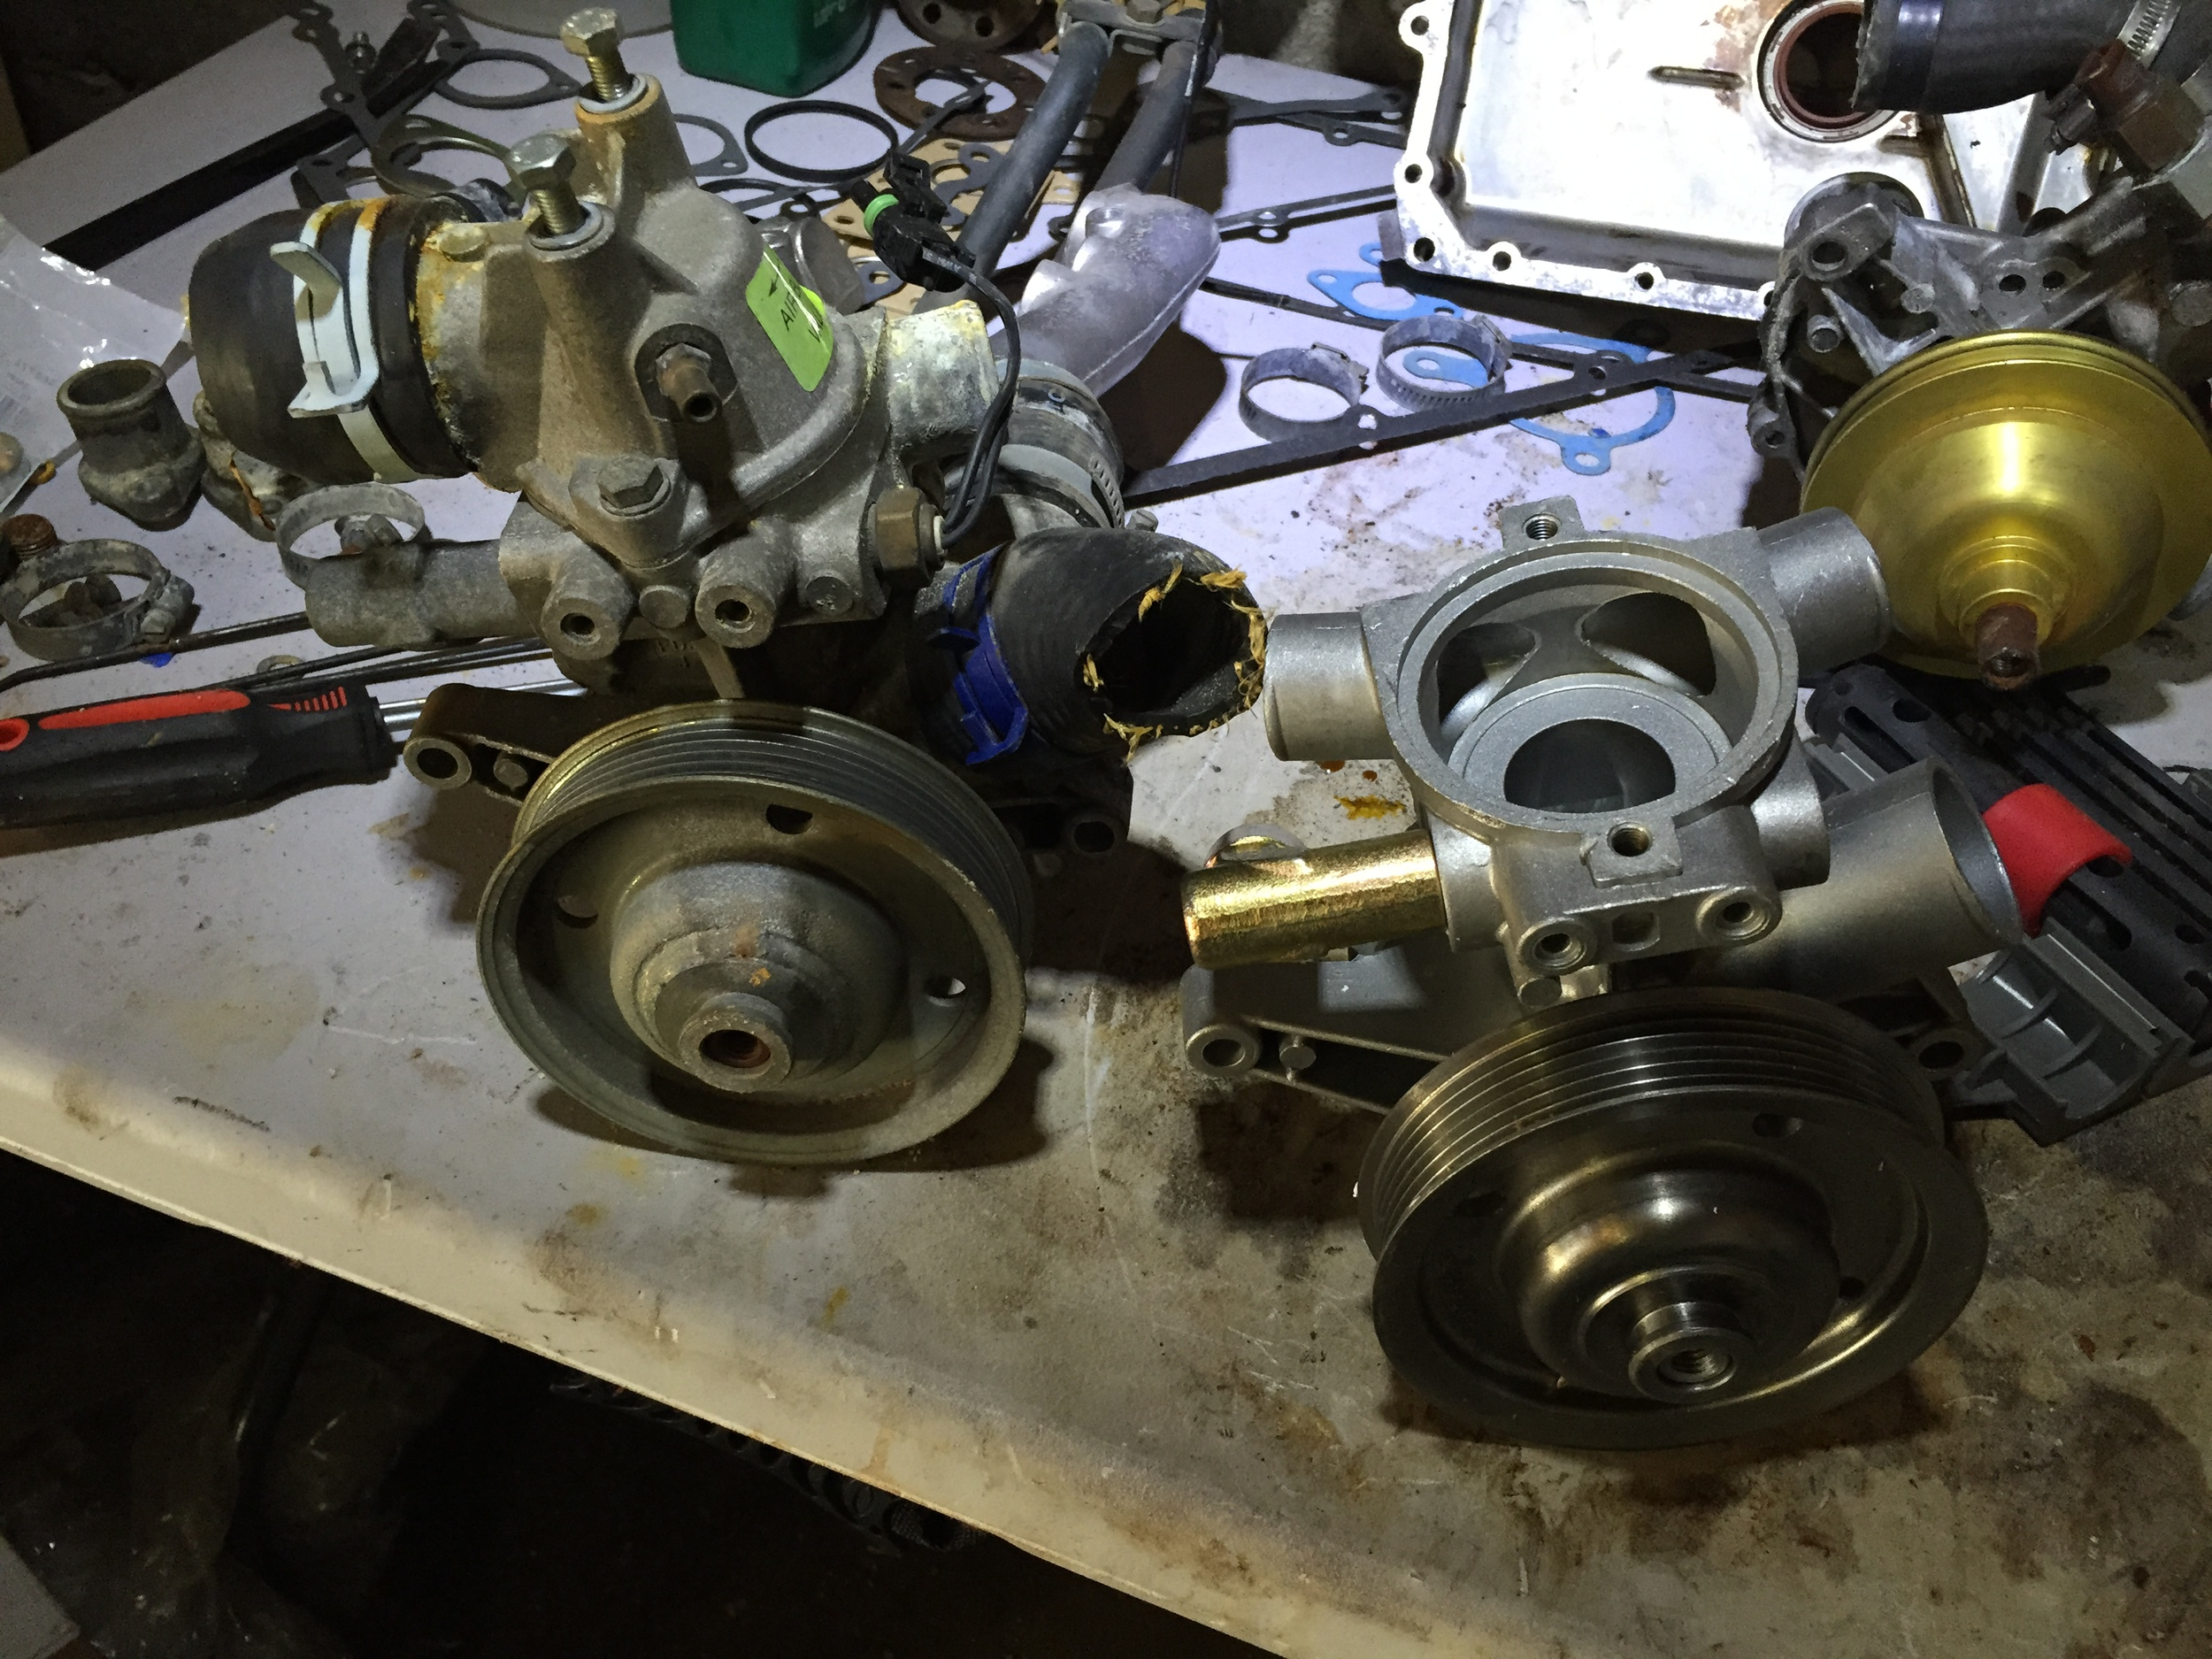 The old 3.0L pump (left) and the new one (right); the 2.8L pump is visible in the background.